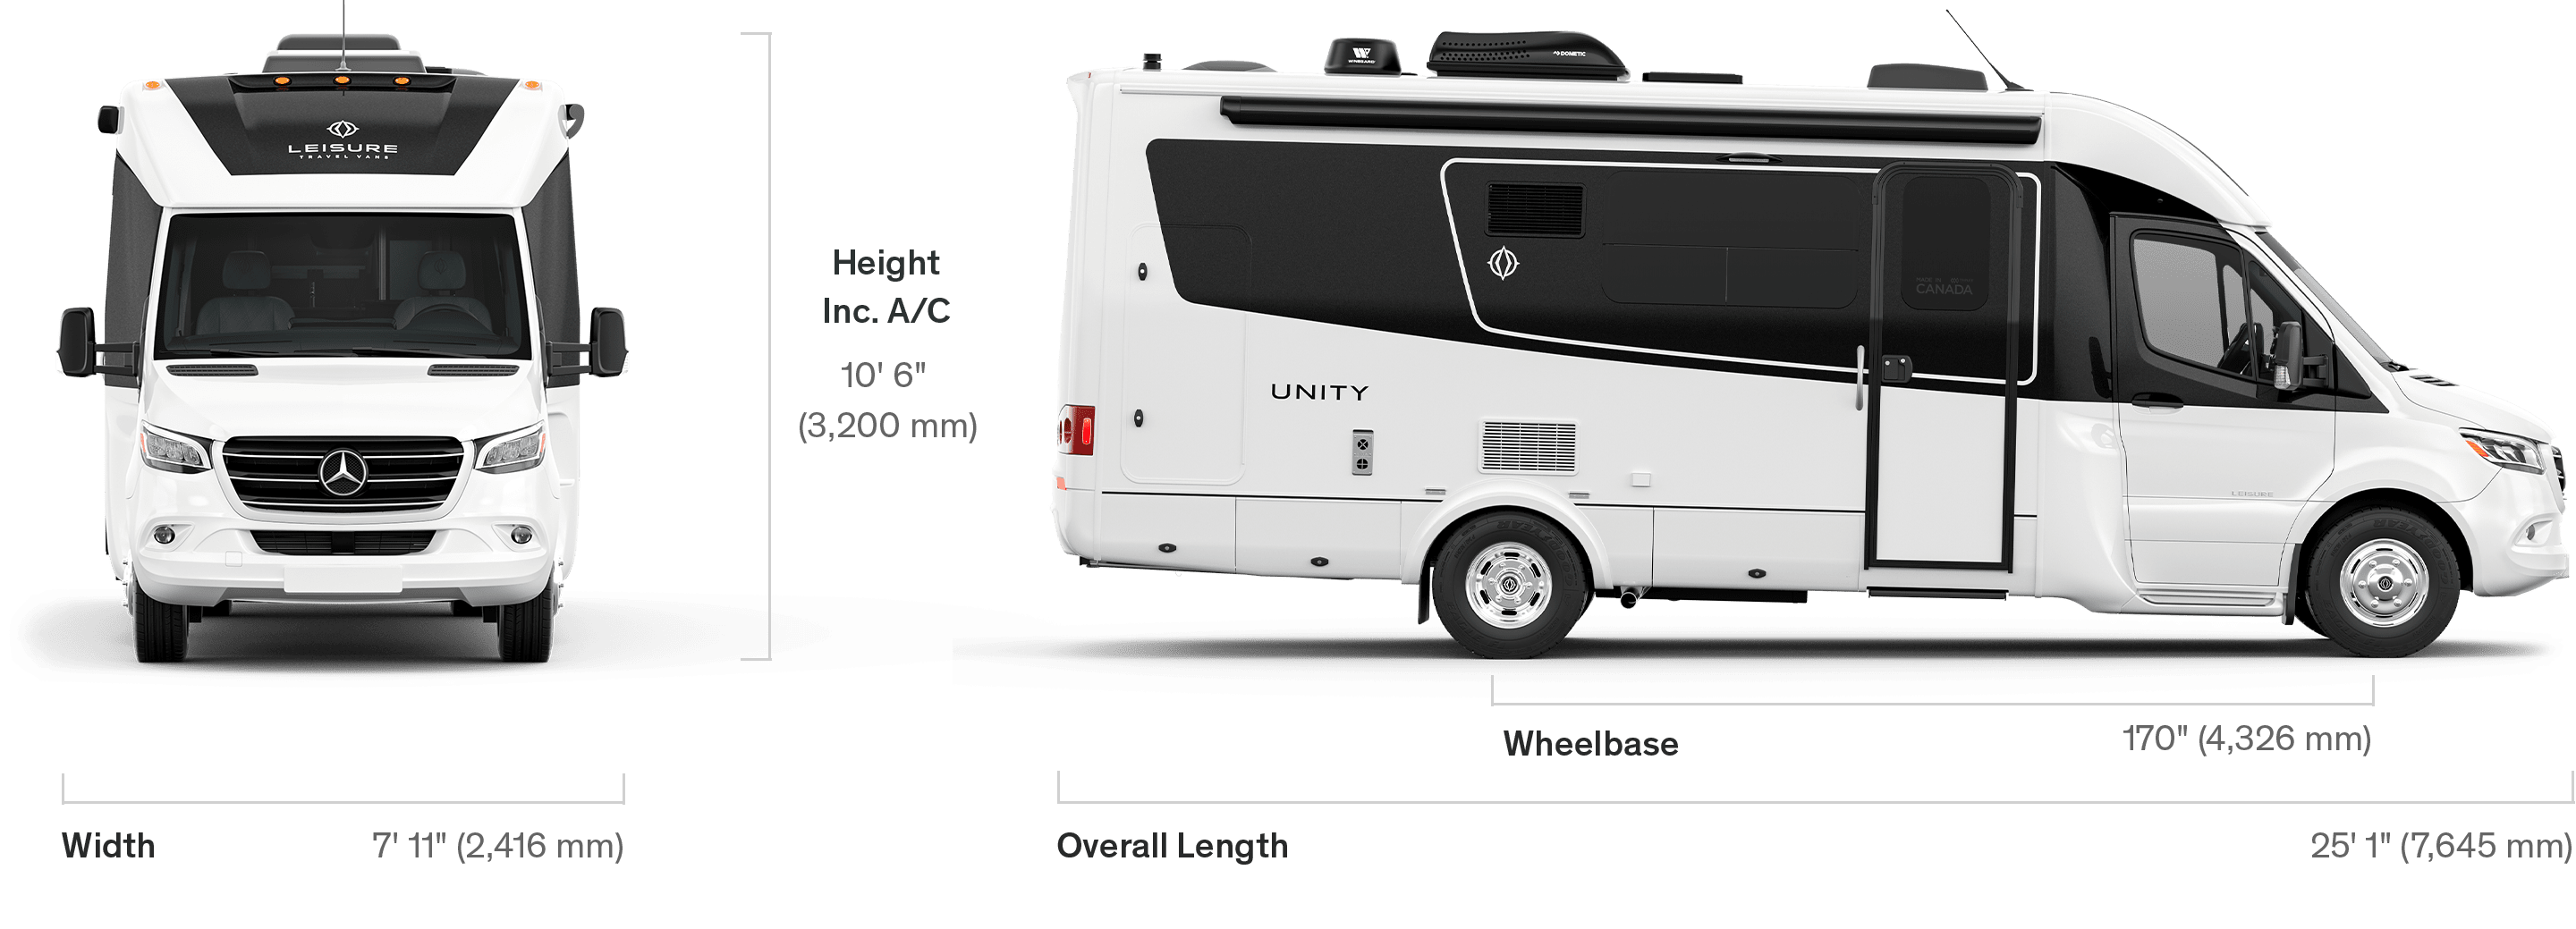 Unity Specifications Leisure Travel Vans Club Car Power Drive Battery Charger Wiring Diagram